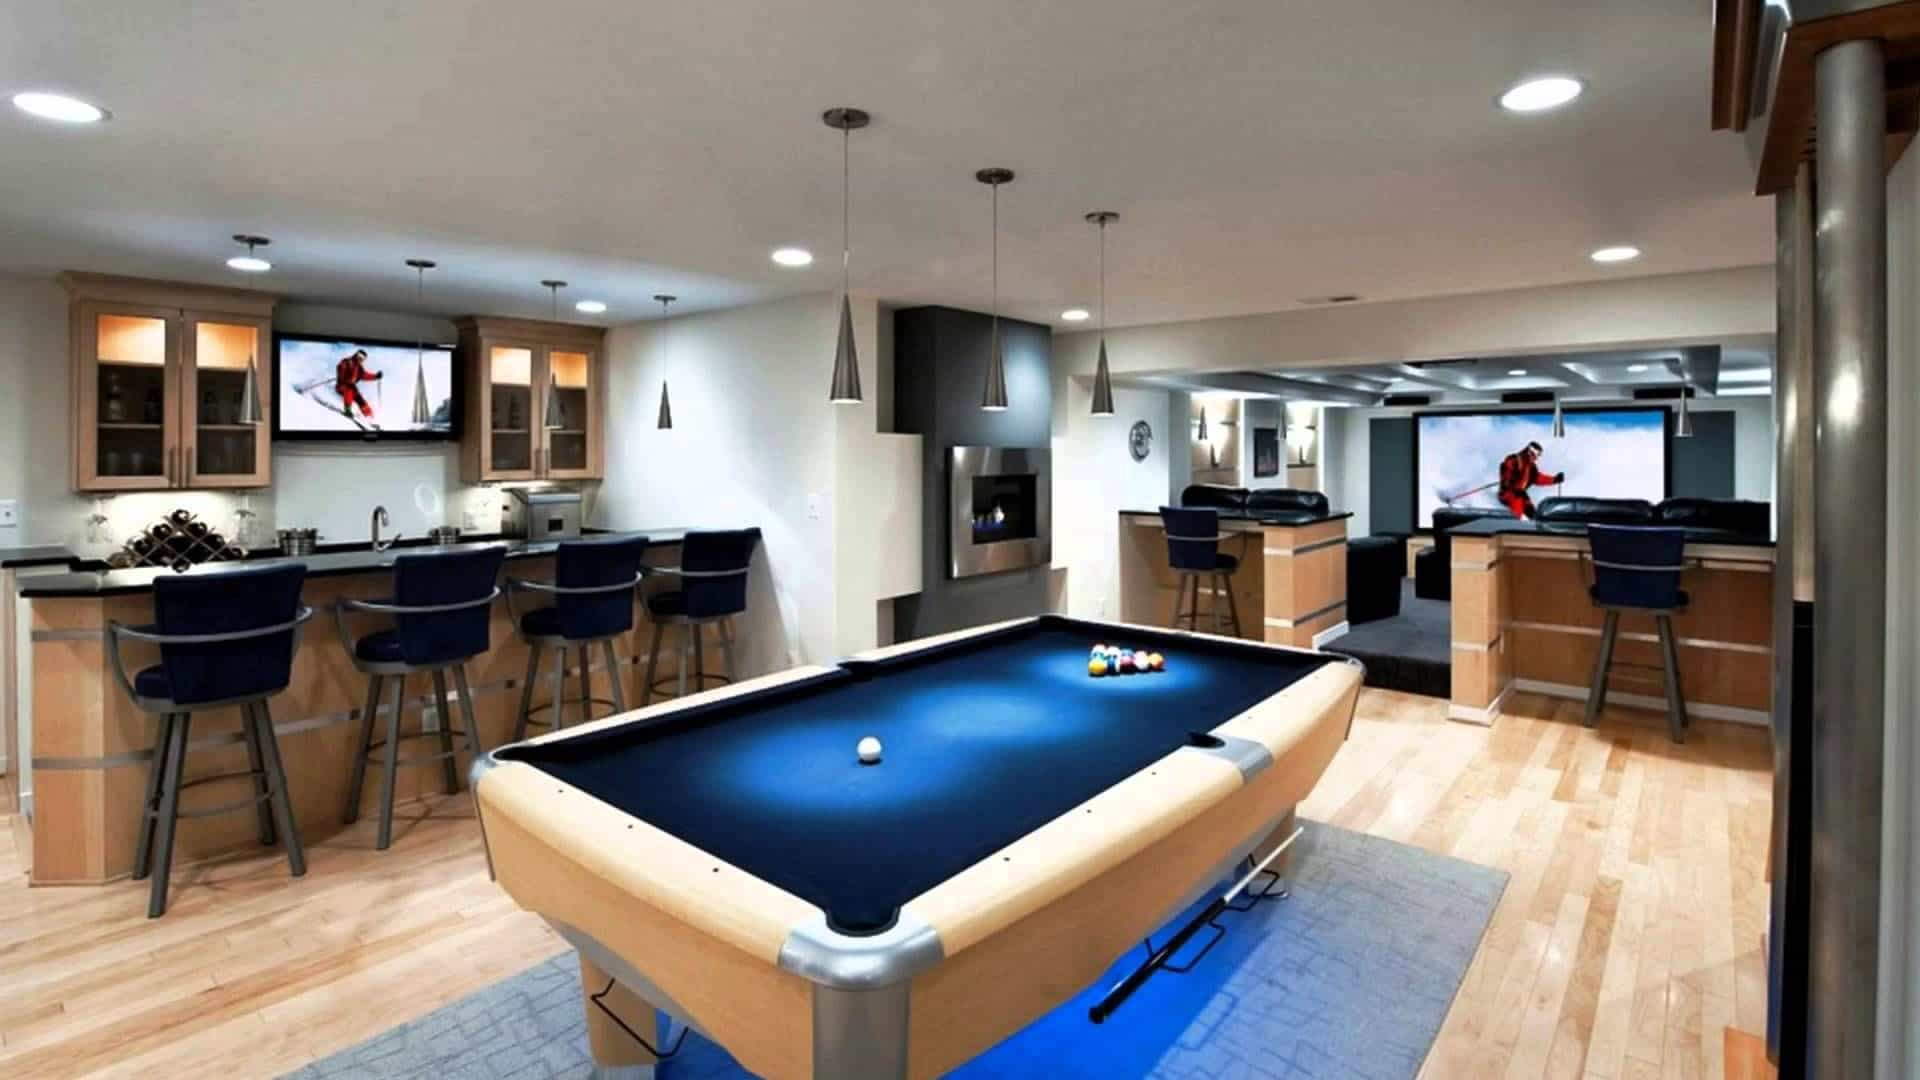 https://www.wearefound.com/awesome-man-cave-decorating-ideas/modern-man-cave-with-pool-table/